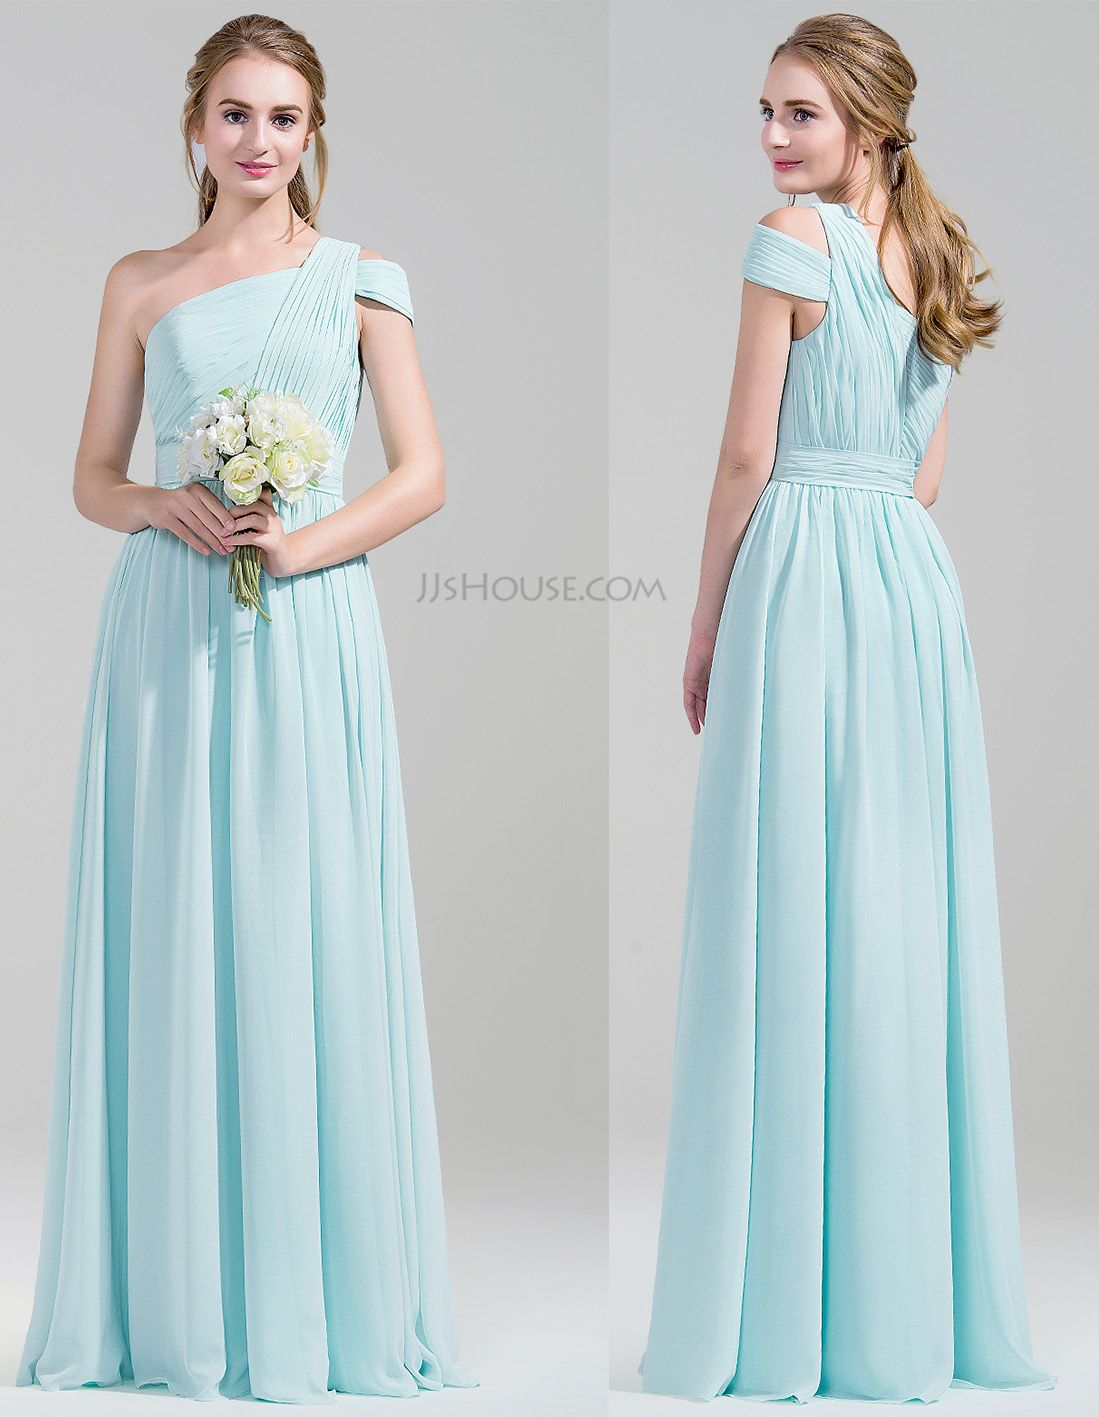 Special shoulder design of this bridesmaid dress. #jjshouse ...